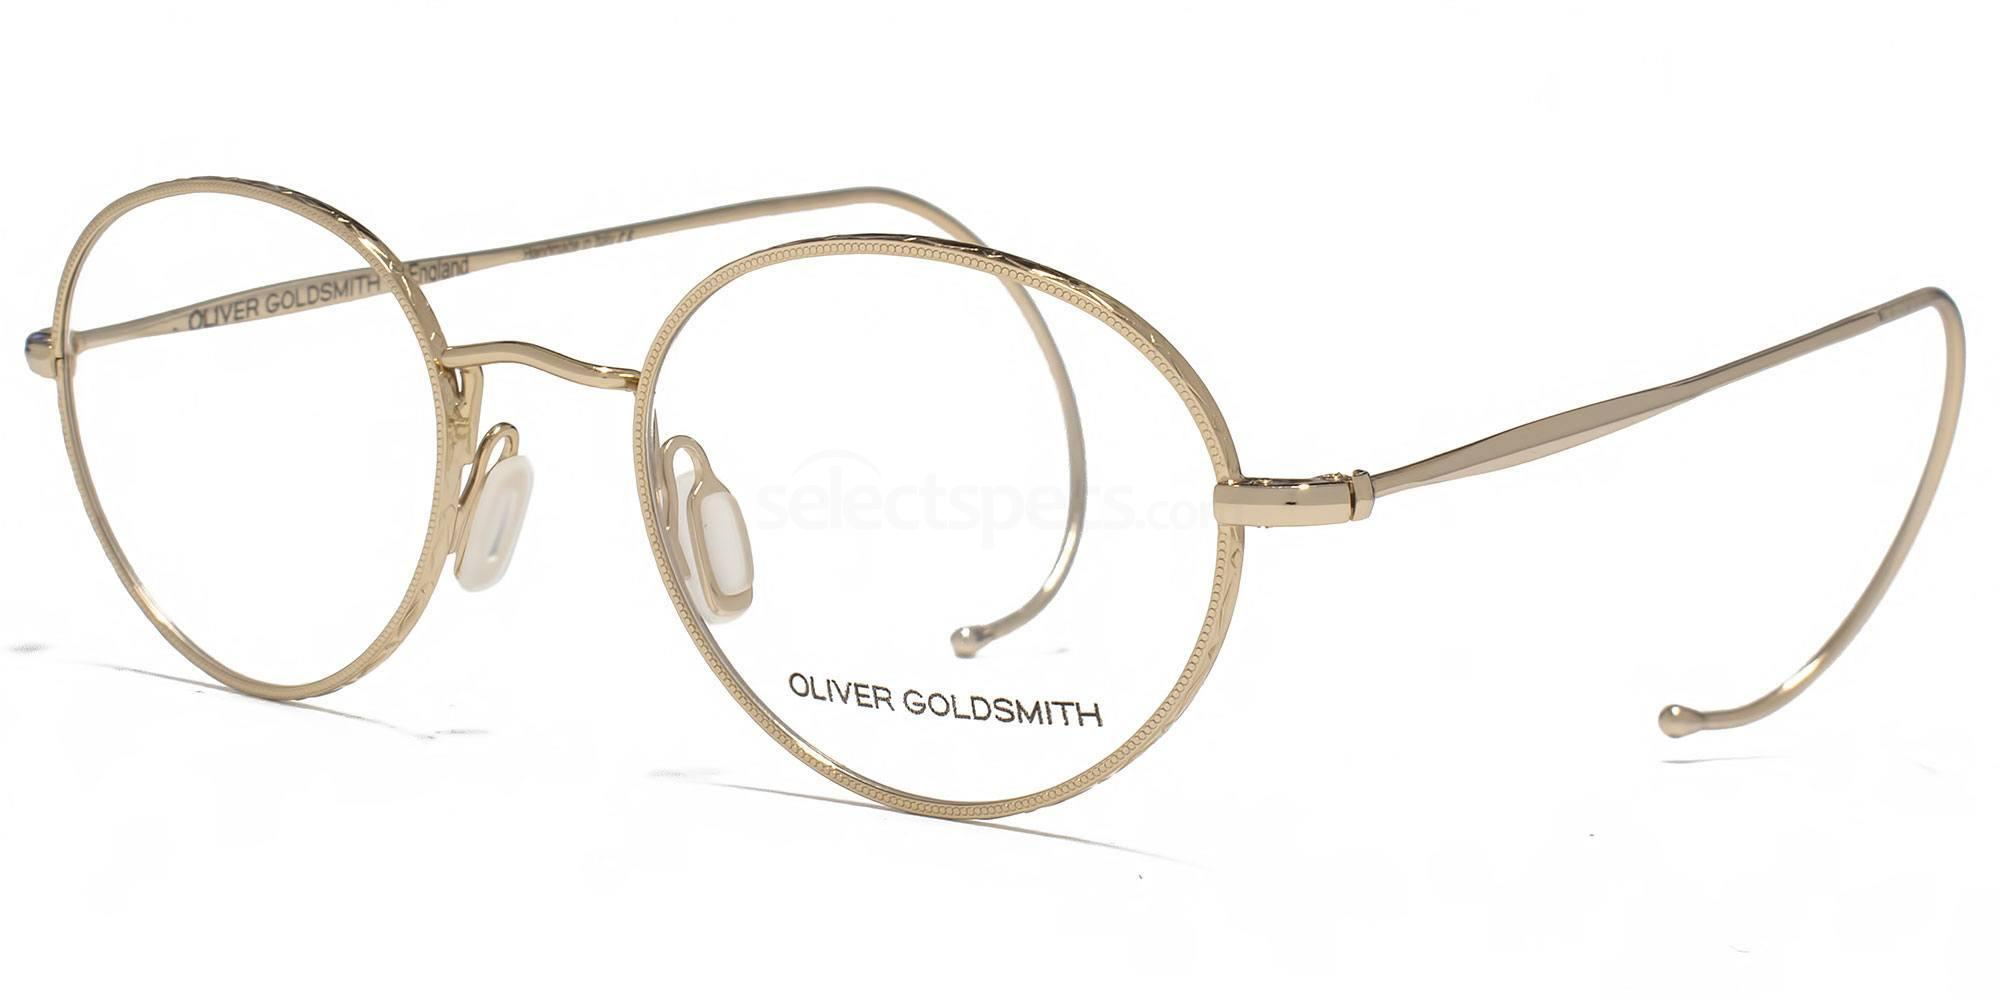 01 OLI001 - CHARLIE Glasses, Oliver Goldsmith